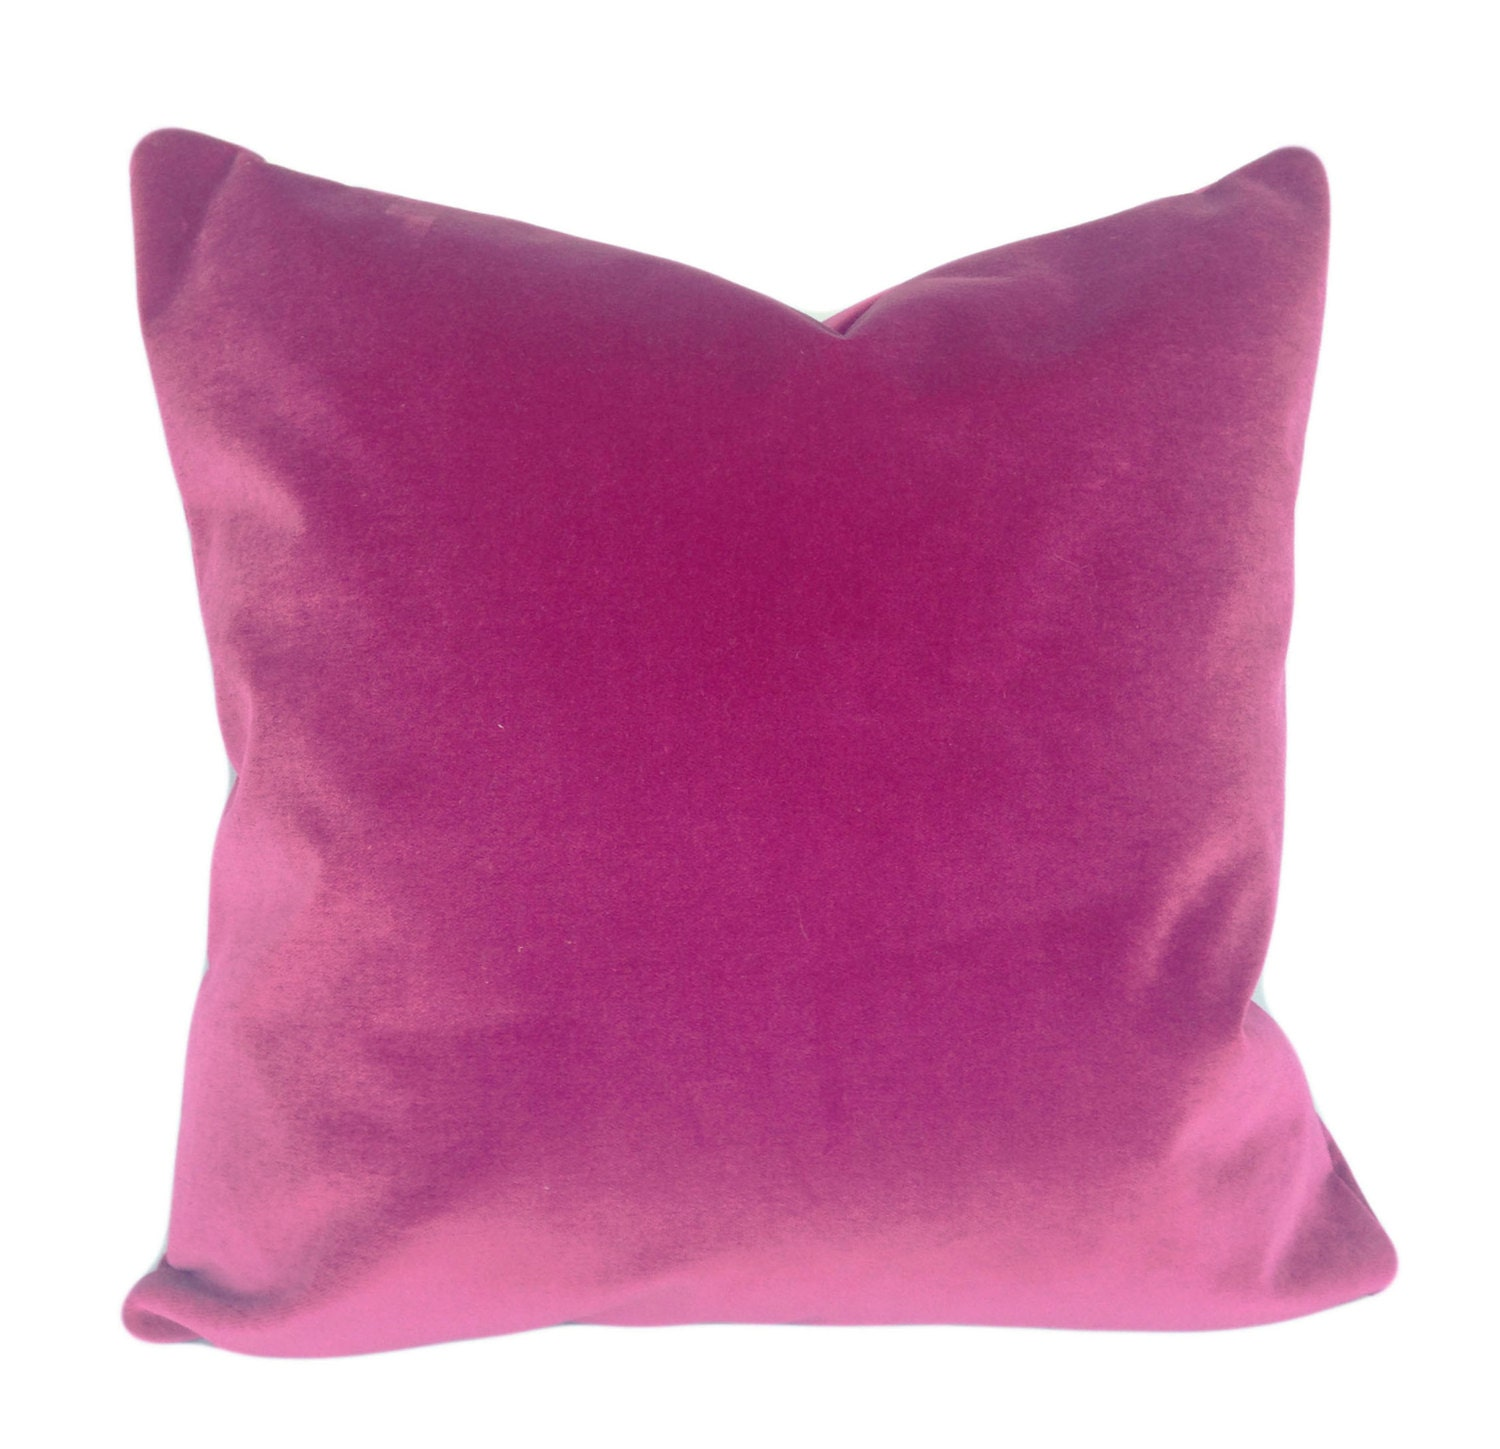 Etsy Pink Throw Pillow : Pink Velvet Pillow Cover Throw Pillow by PillowTimeGirls on Etsy